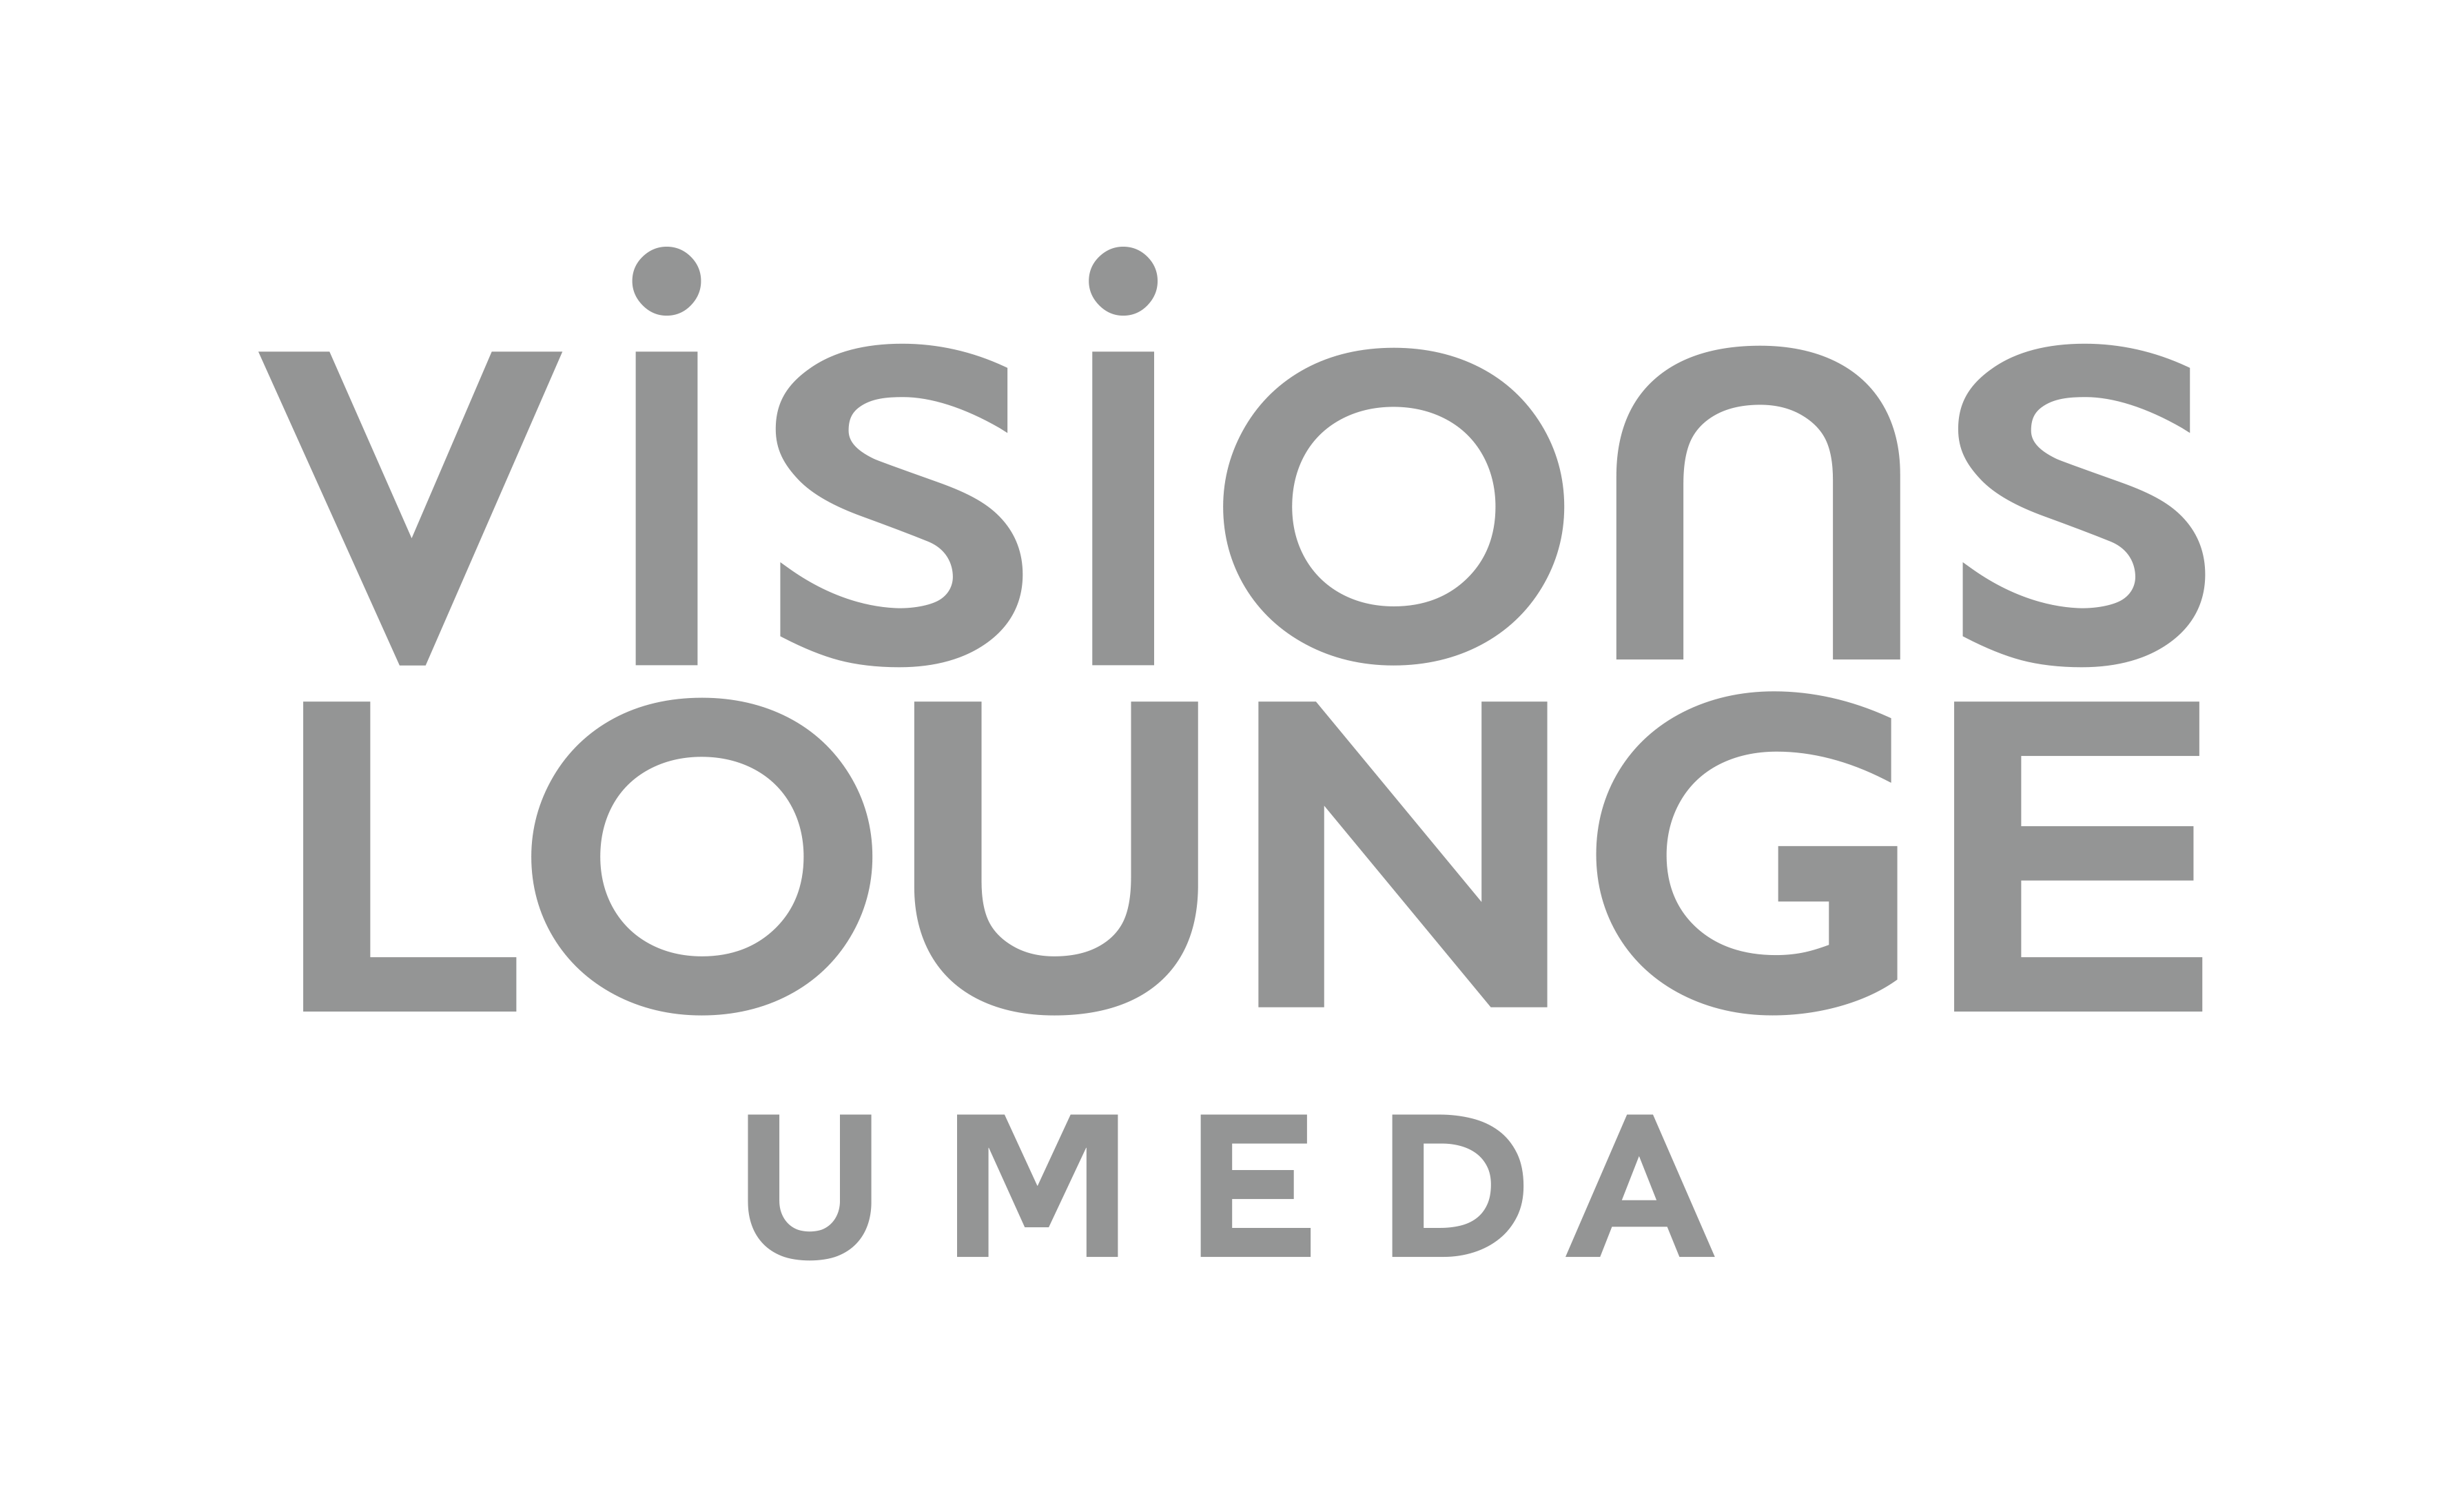 visions LOUNGE